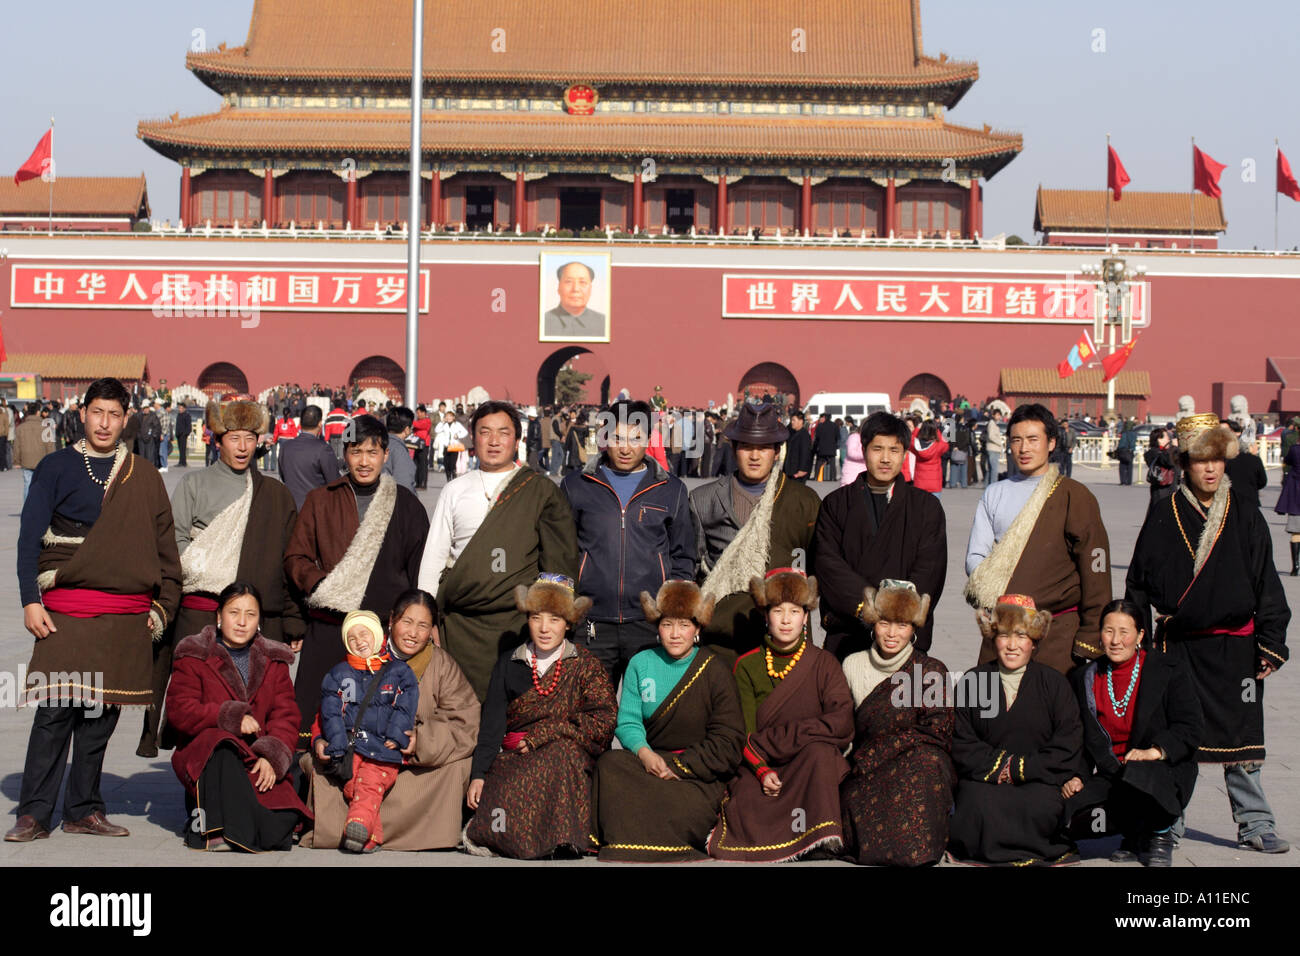 Tibetan tourists from Chamdo pose in front of  the Forbidden City's Gate of Heavenly Peace,  Beijing China - Stock Image